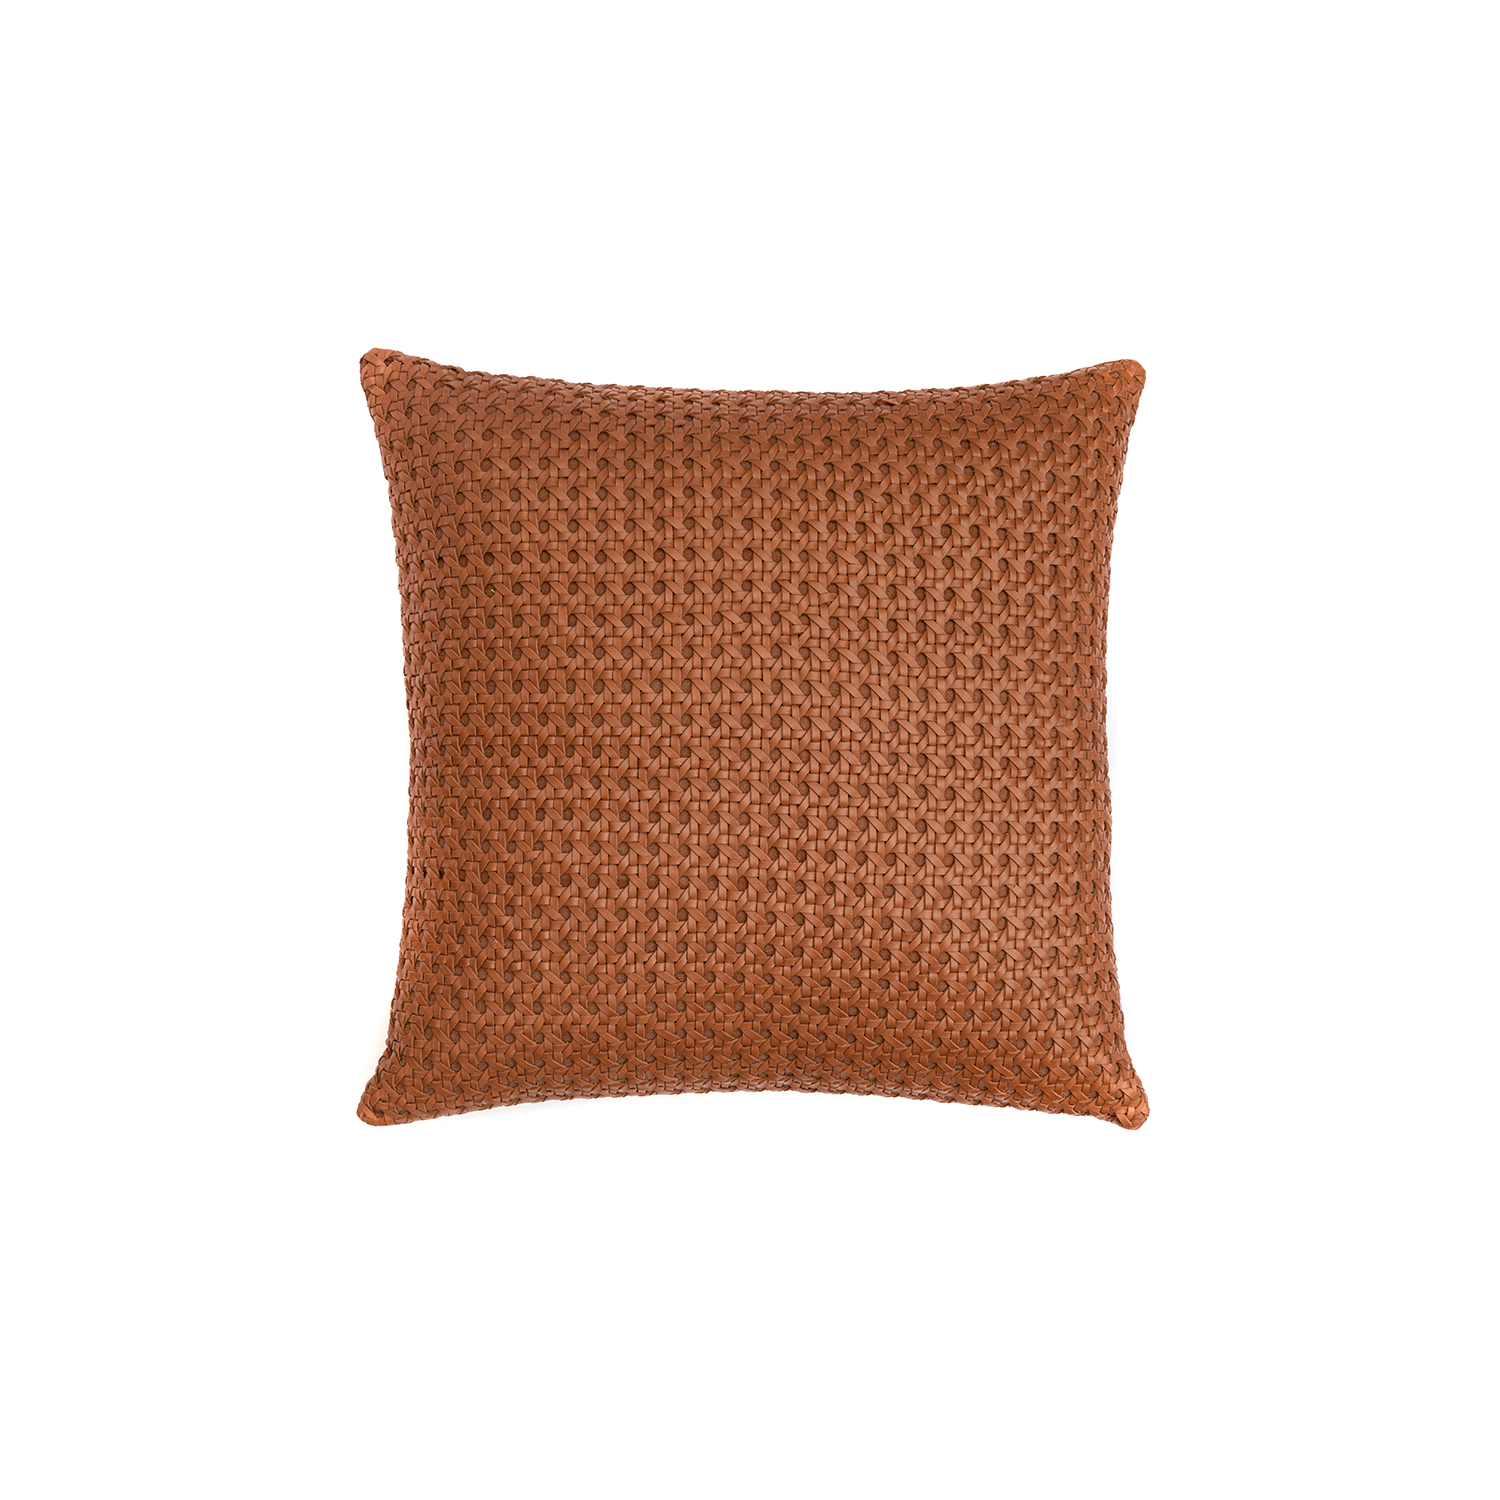 Mini Catavento Woven Leather Cushion Square - The Mini Catavento Woven Leather Cushion is designed to complement an ambient with a natural and sophisticated feeling. This cushion style is available in pleated leather or pleated suede leather. Elisa Atheniense woven handmade leather cushions are specially manufactured in Brazil using an exclusive treated leather that brings the soft feel touch to every single piece.   The front panel is handwoven in leather and the back panel is 100% Pes, made in Brazil.  The inner cushion is available in Hollow Fibre and European Duck Feathers, made in the UK.  Please enquire for more information and see colour chart for reference.   | Matter of Stuff